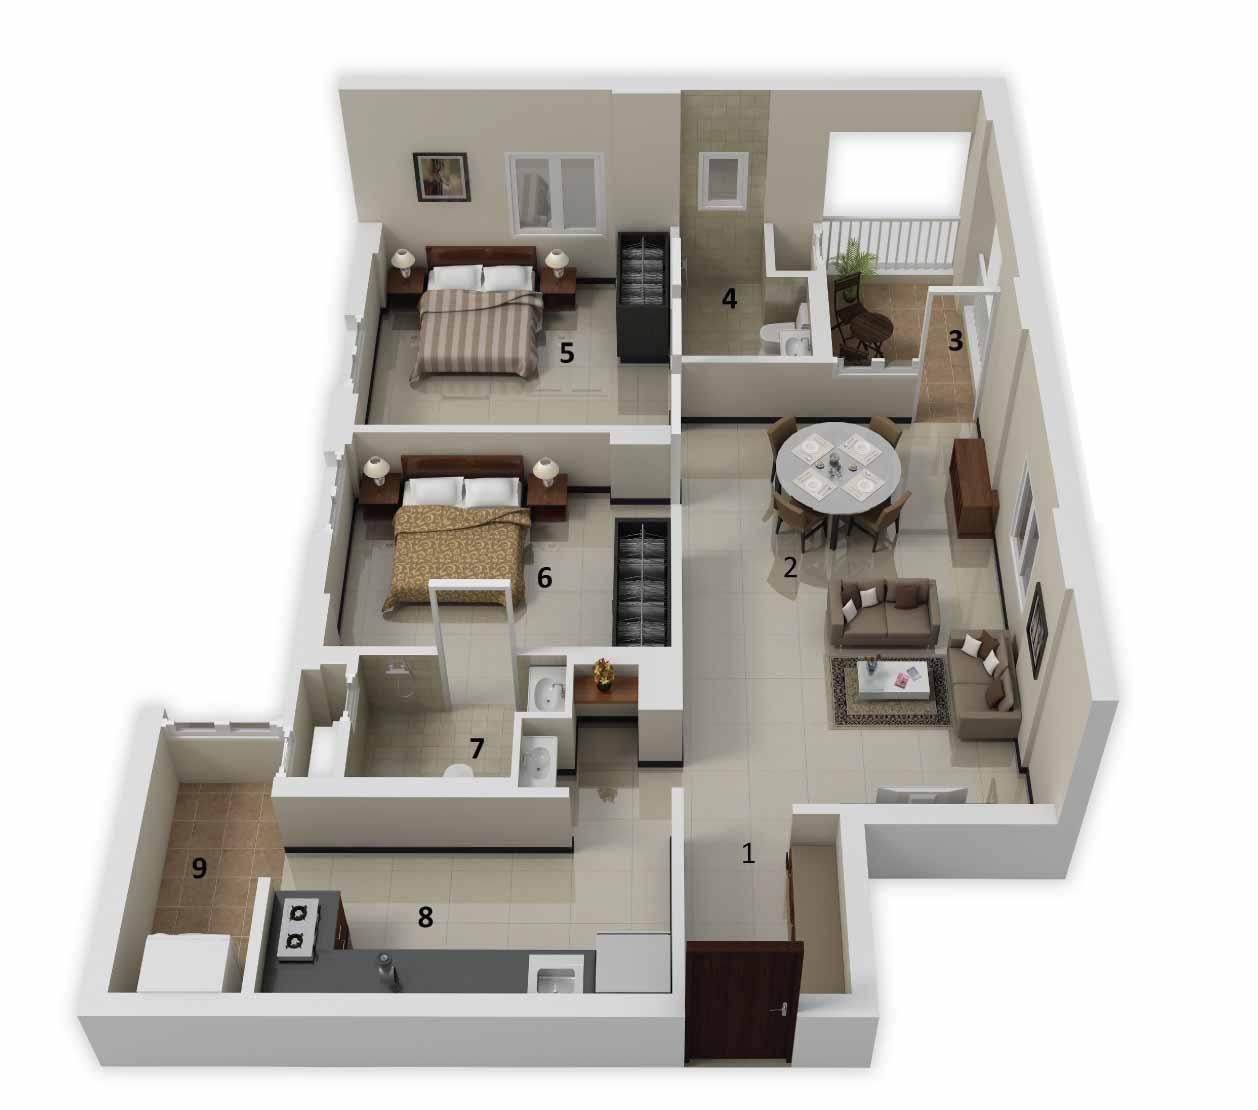 Home Design 3d Gold Ideas: 25 More 2 Bedroom 3D Floor Plans